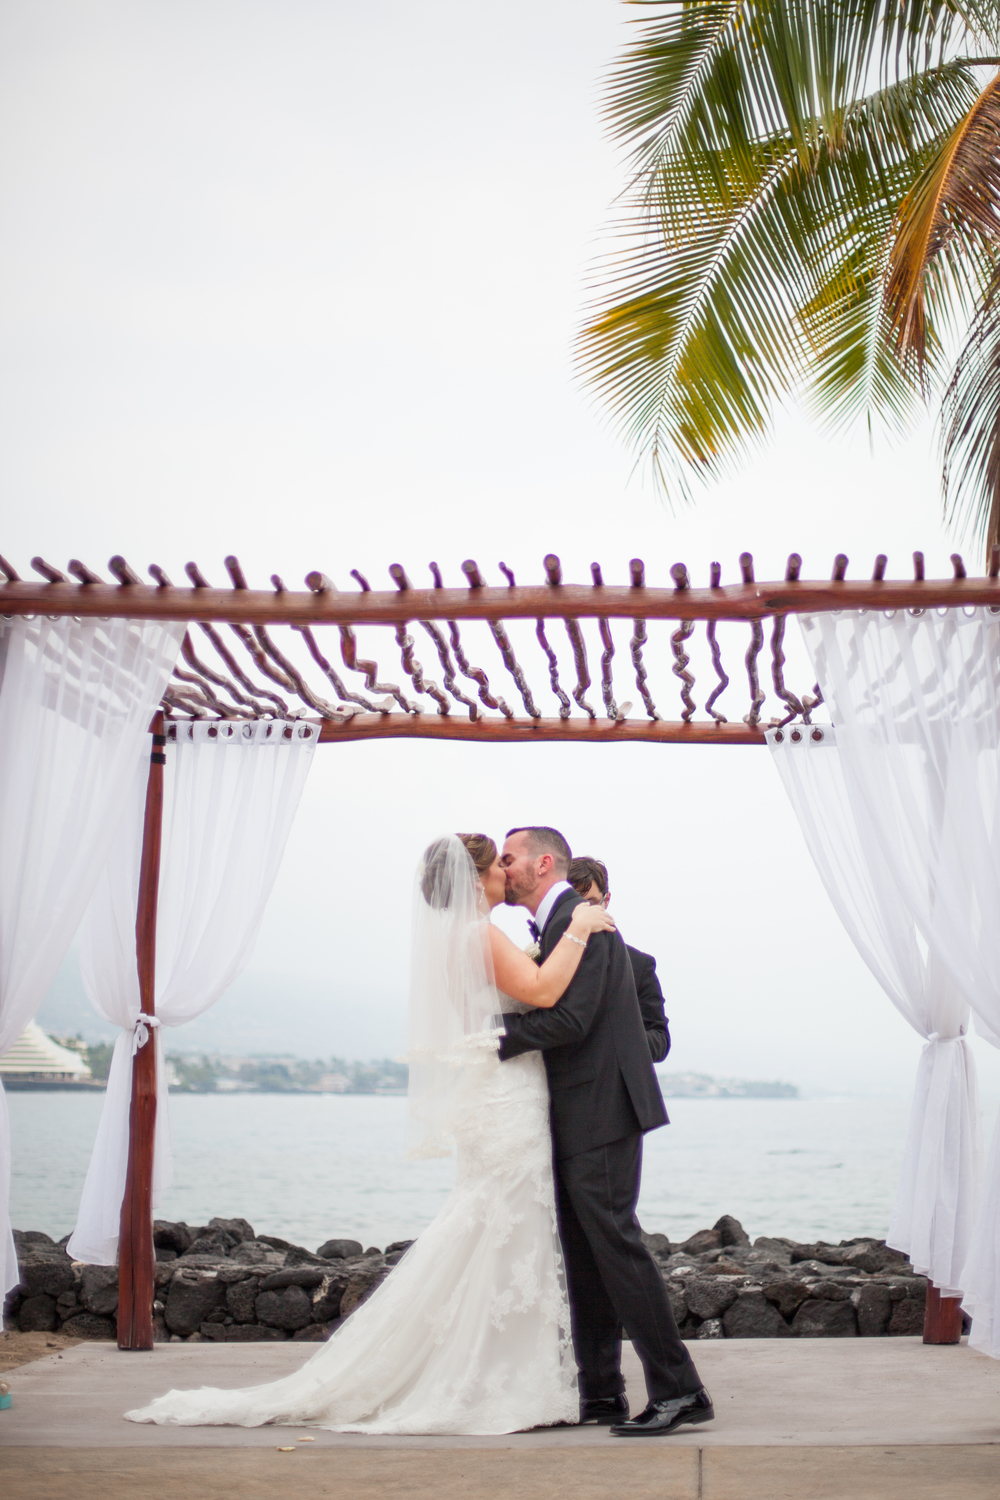 big island hawaii mauna lani resort wedding © kelilina photography 20160214171958-1.jpg